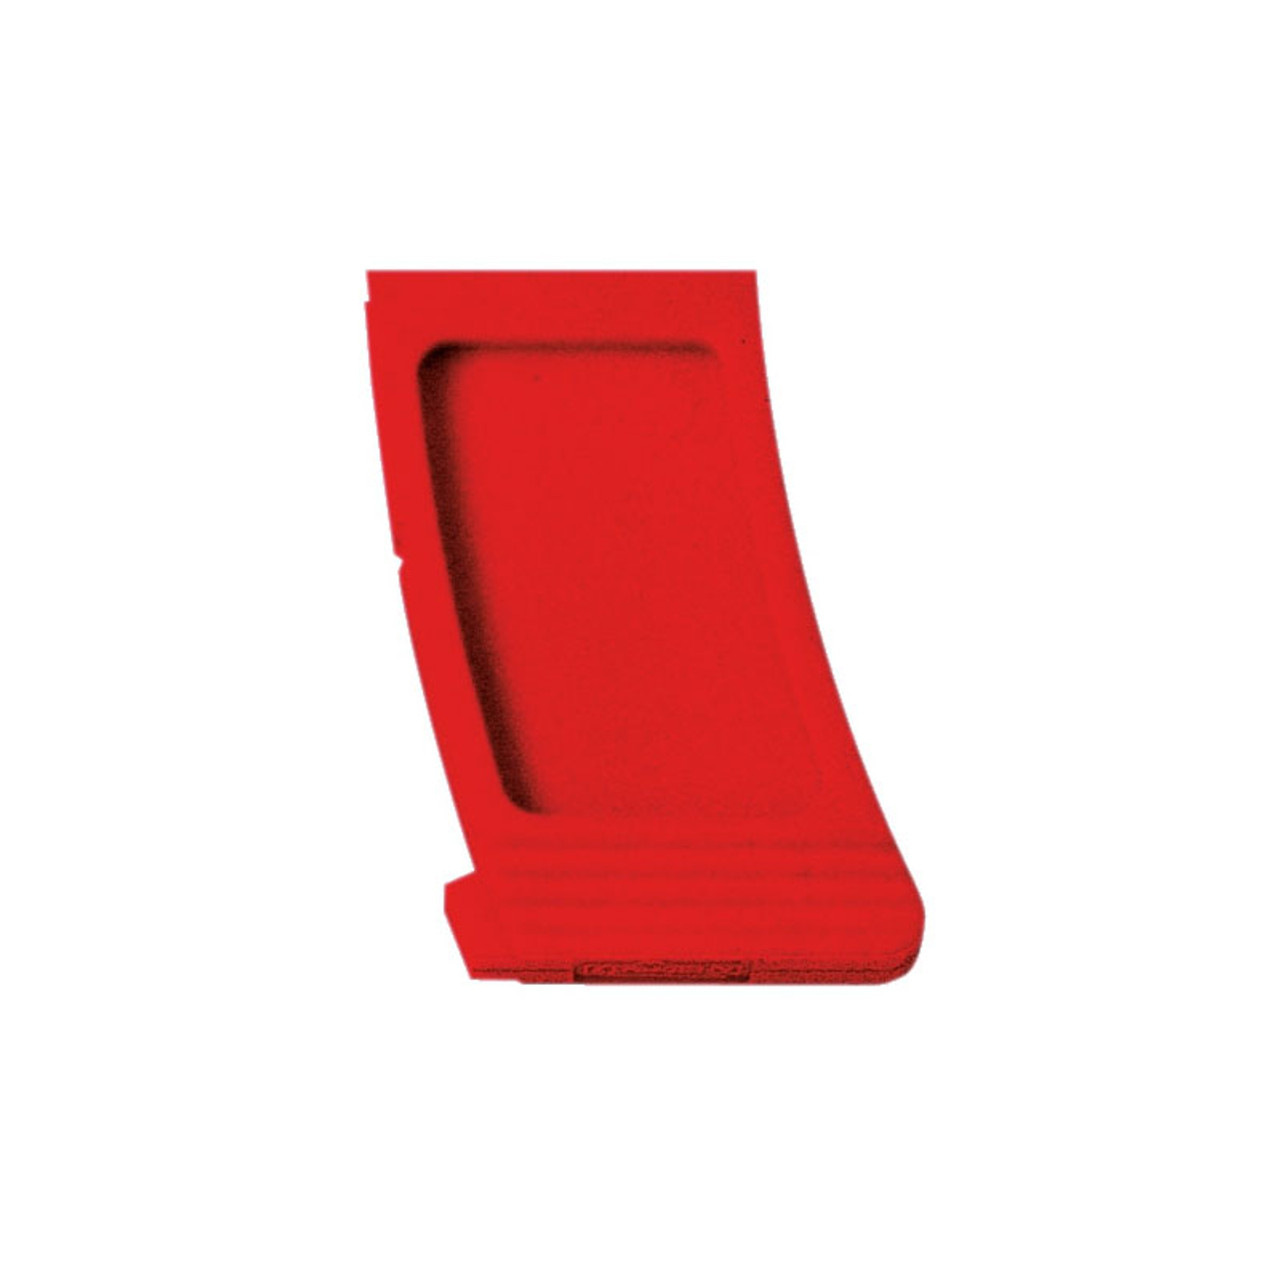 Anschutz single shot  22LR magazine adaptor (4846)